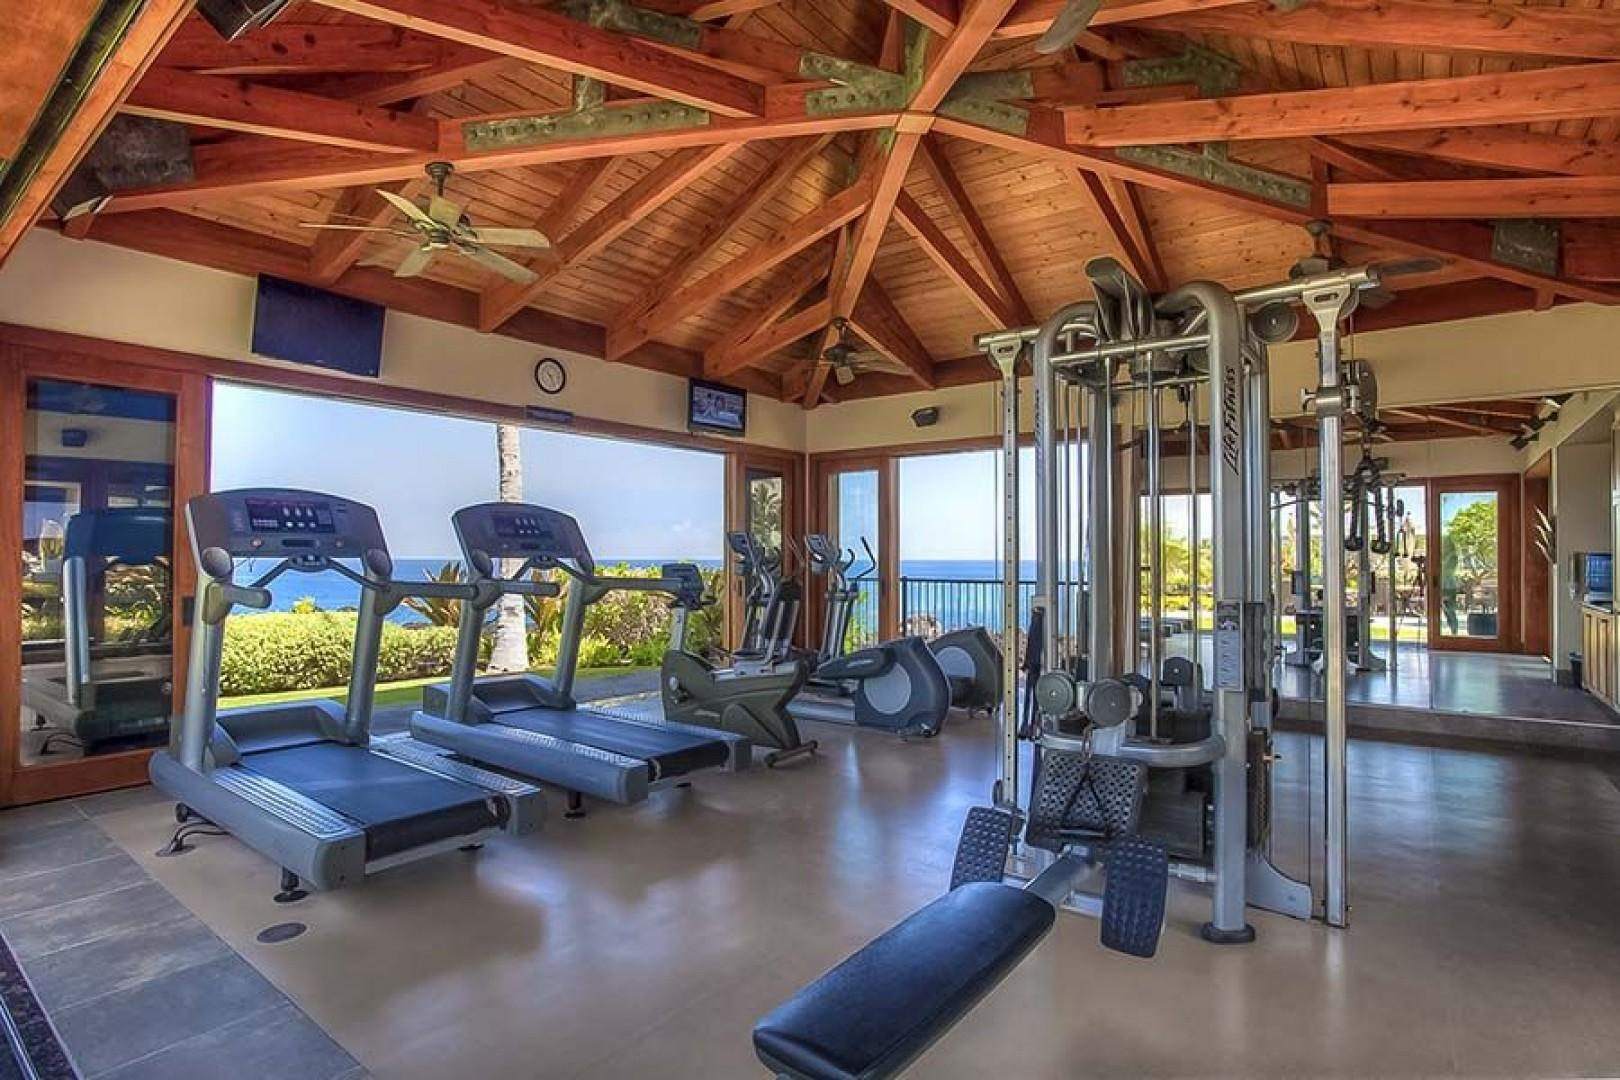 Oceanfront workout cabana, watch whales while you get fit